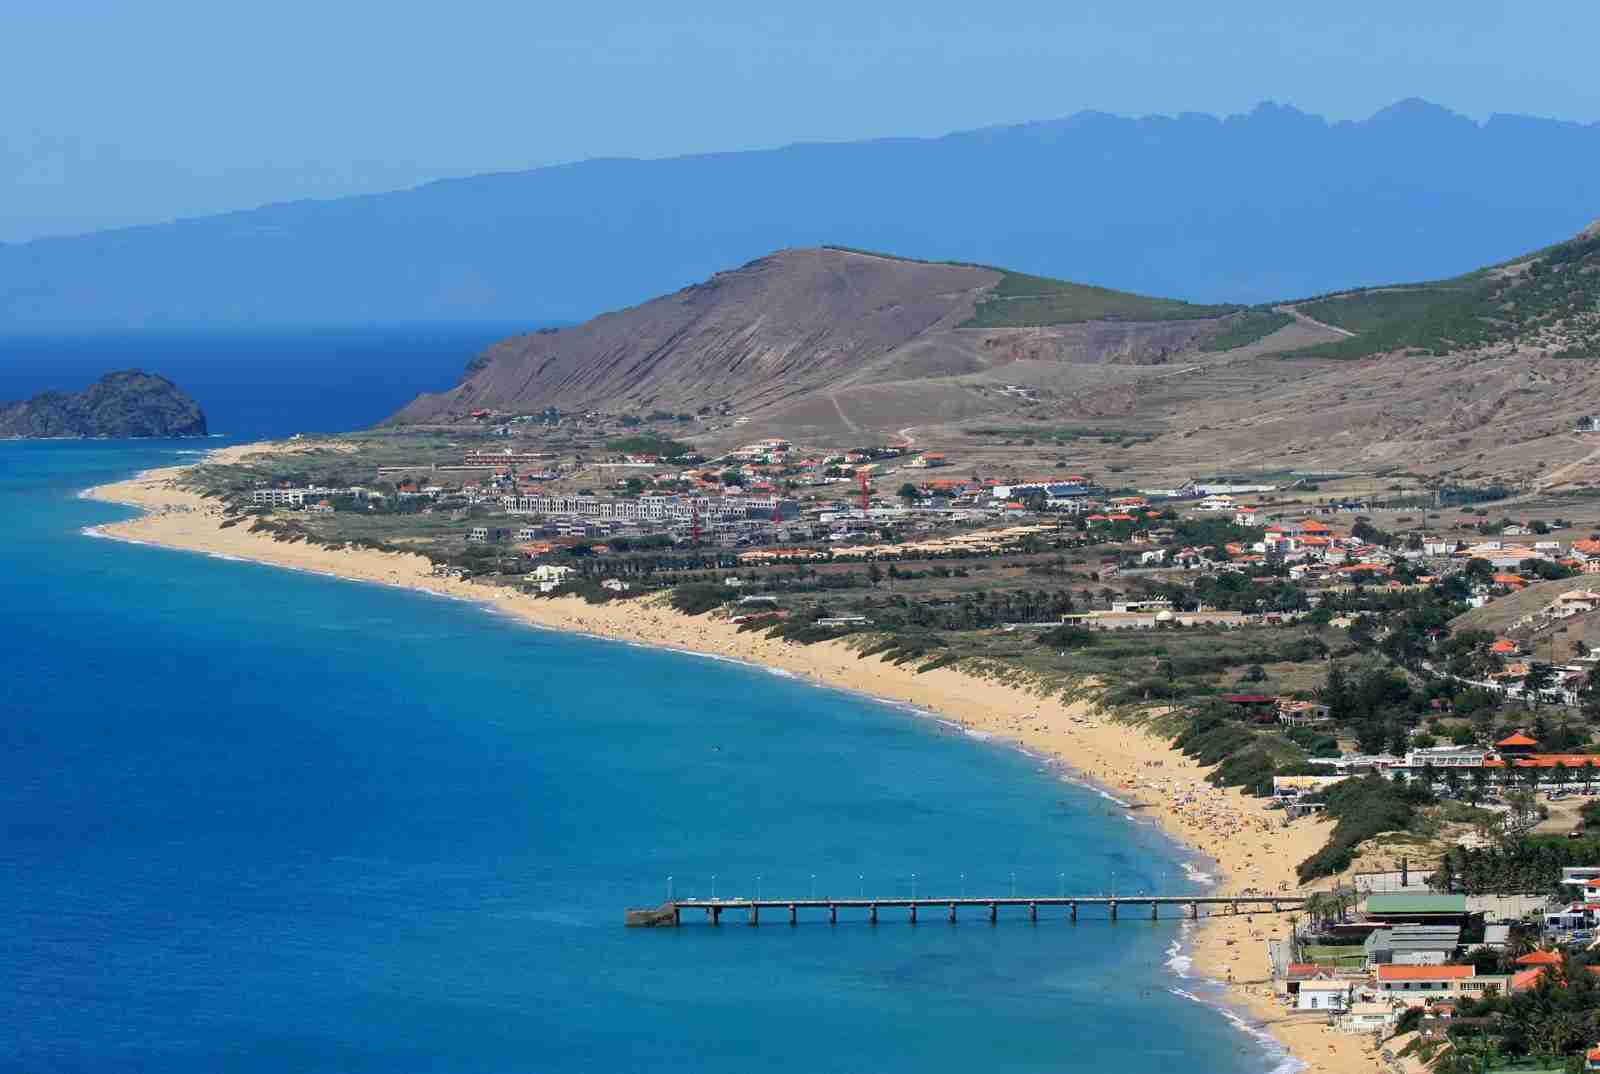 Porto Santo Beach. (Photo by Francisco Amaral Leitao / Shutterstock)